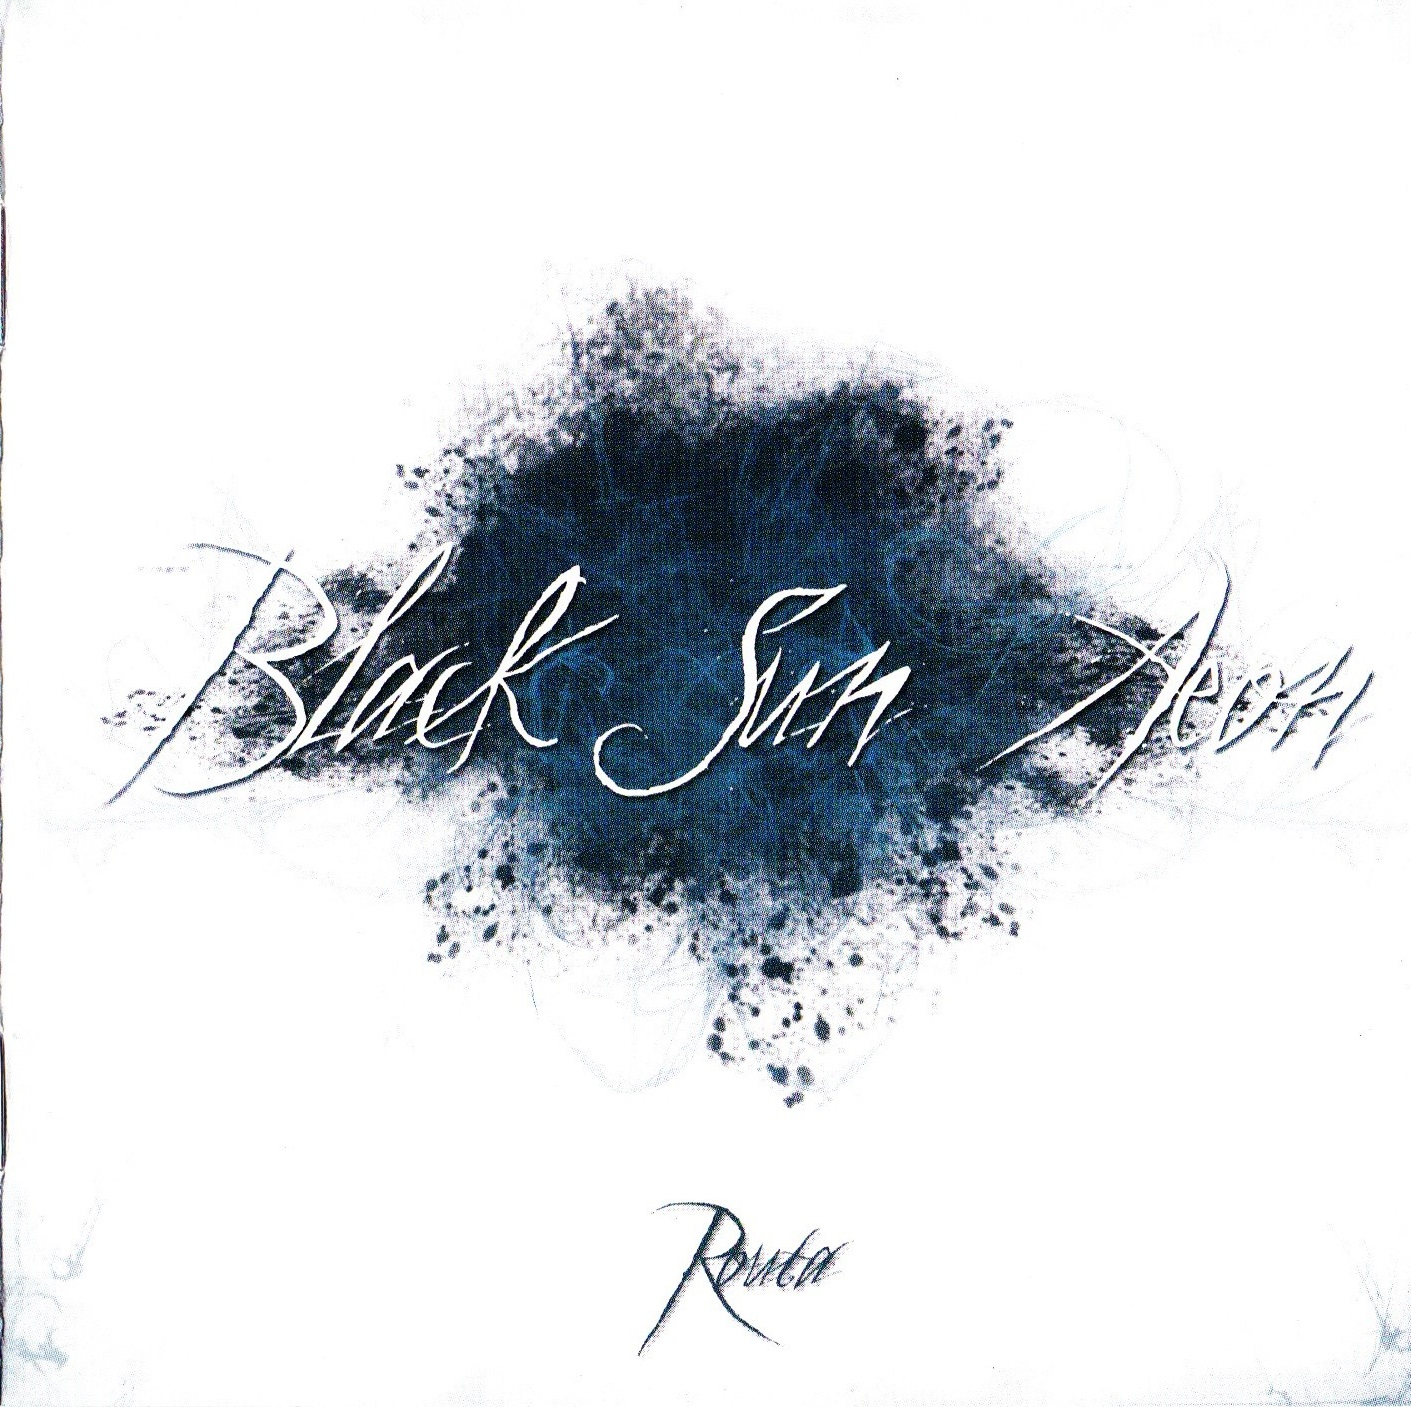 Black Sun Aeon — Routa (2010)